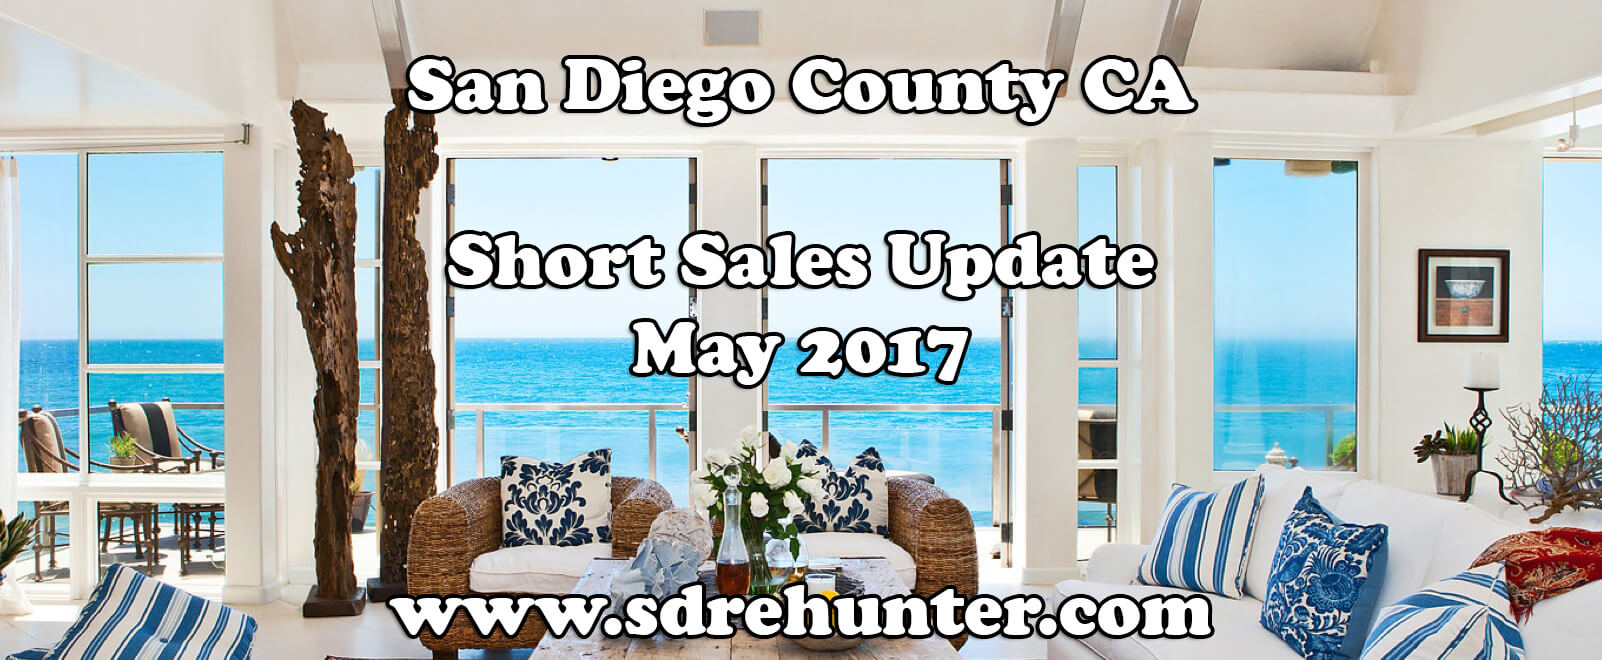 San Diego County CA Short Sales Update - May 2017